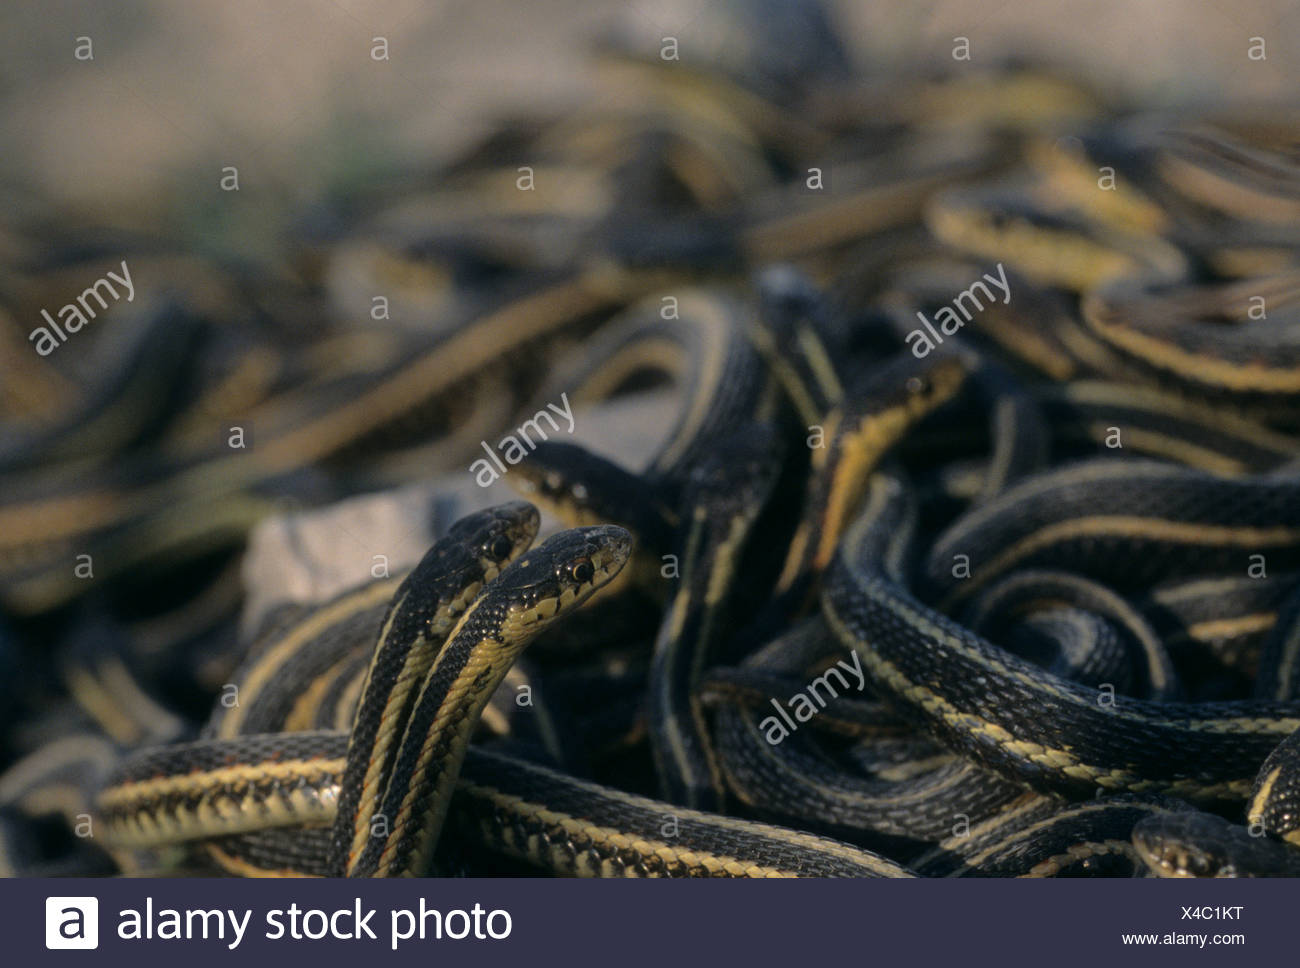 Mating ball of Red-sided garter snakes in spring coming out of hibernation near Inwood, Manitoba, Canada Stock Photo